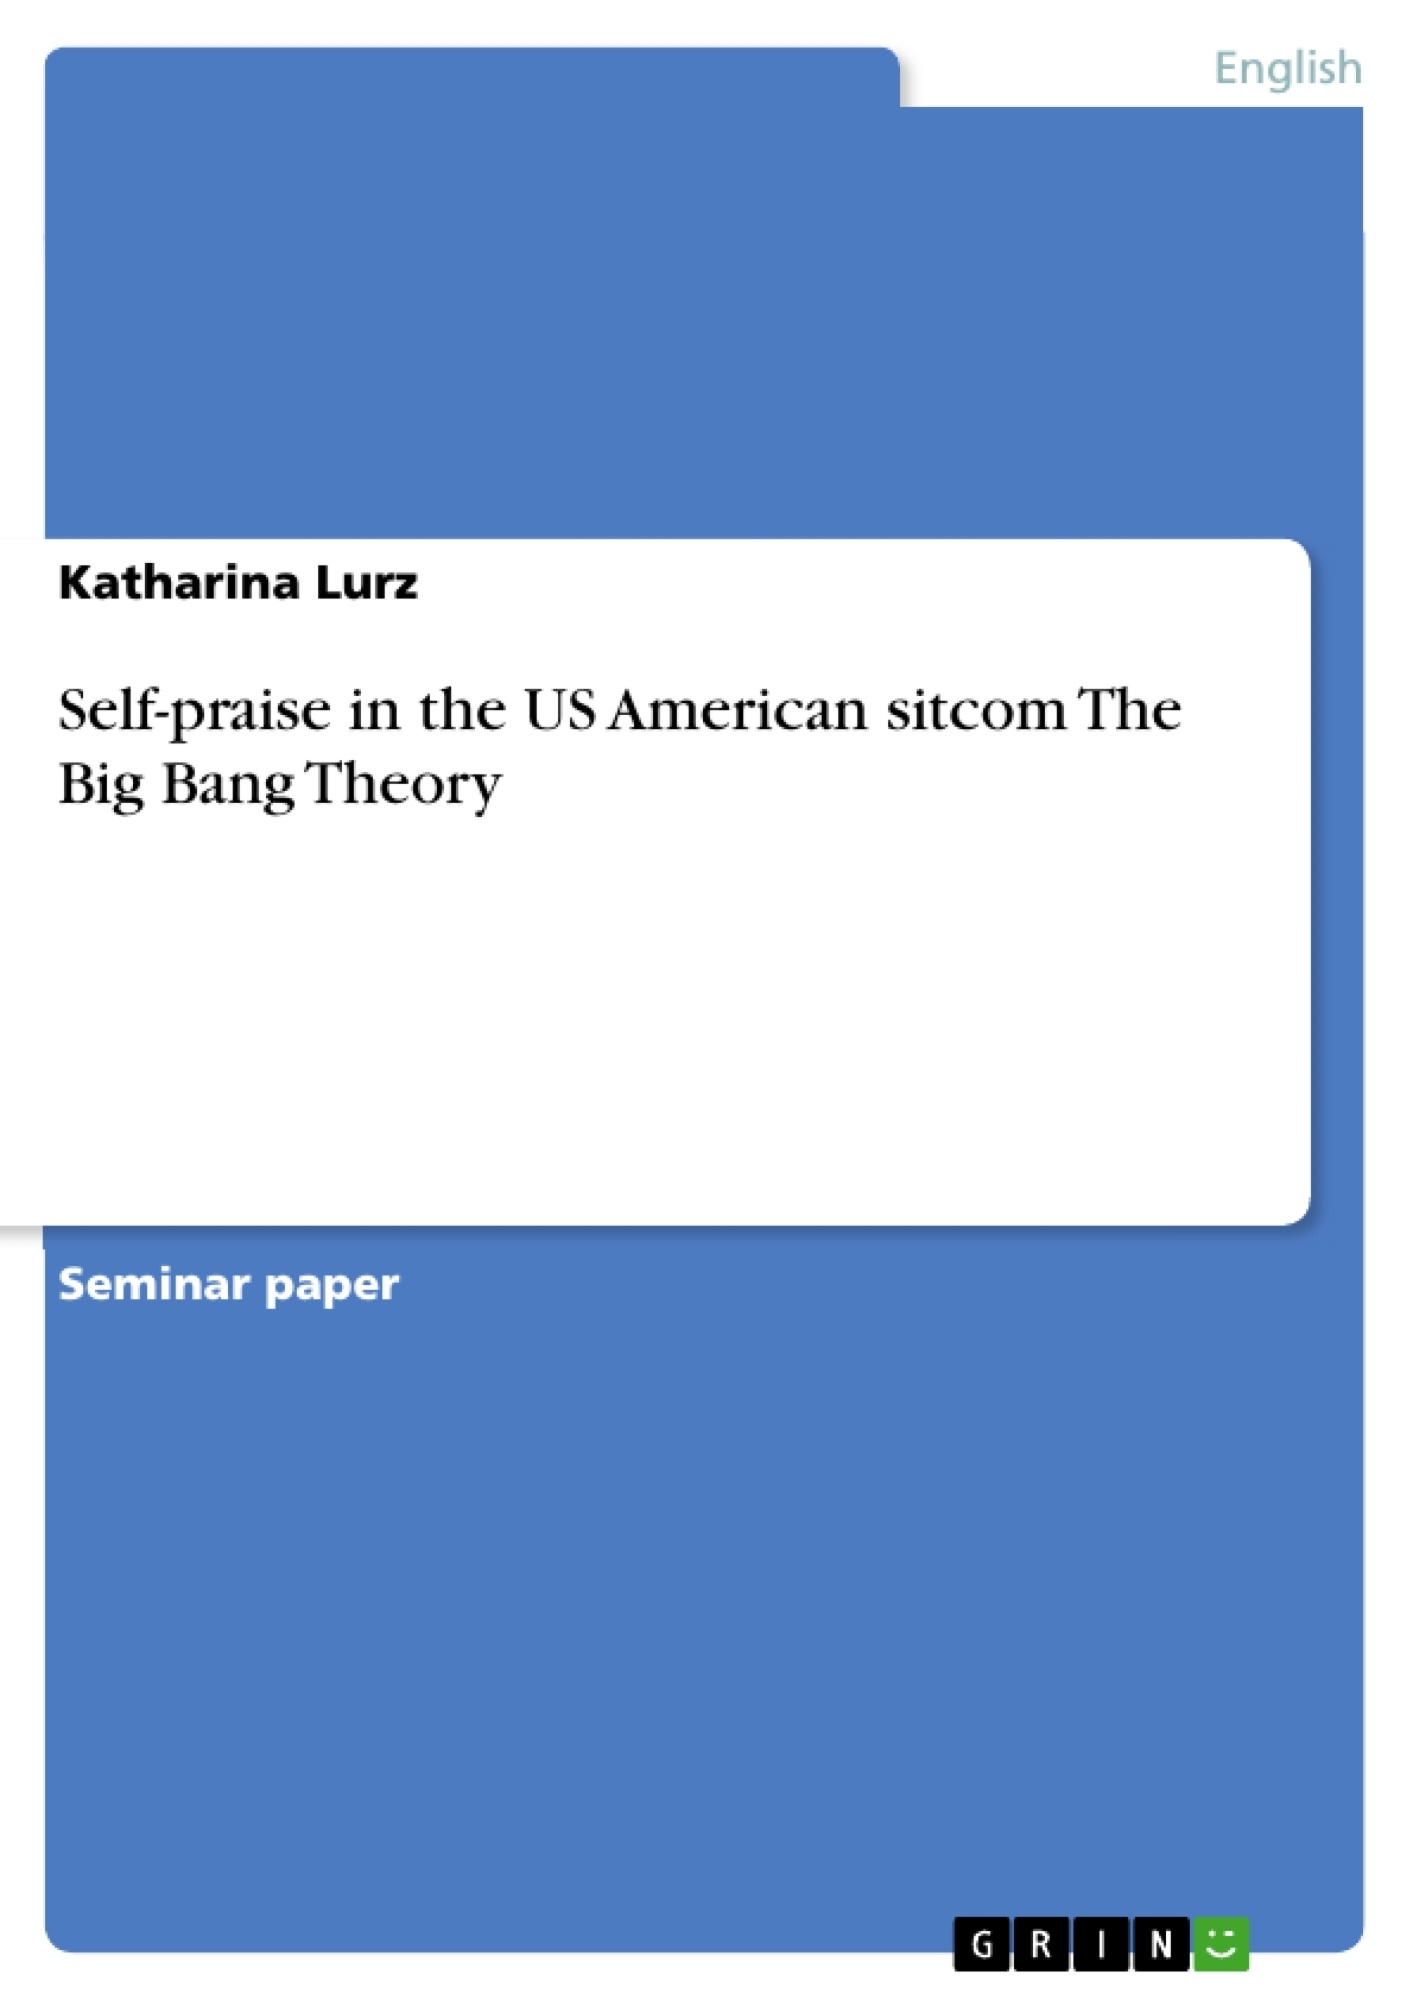 Title: Self-praise in the US American sitcom The Big Bang Theory